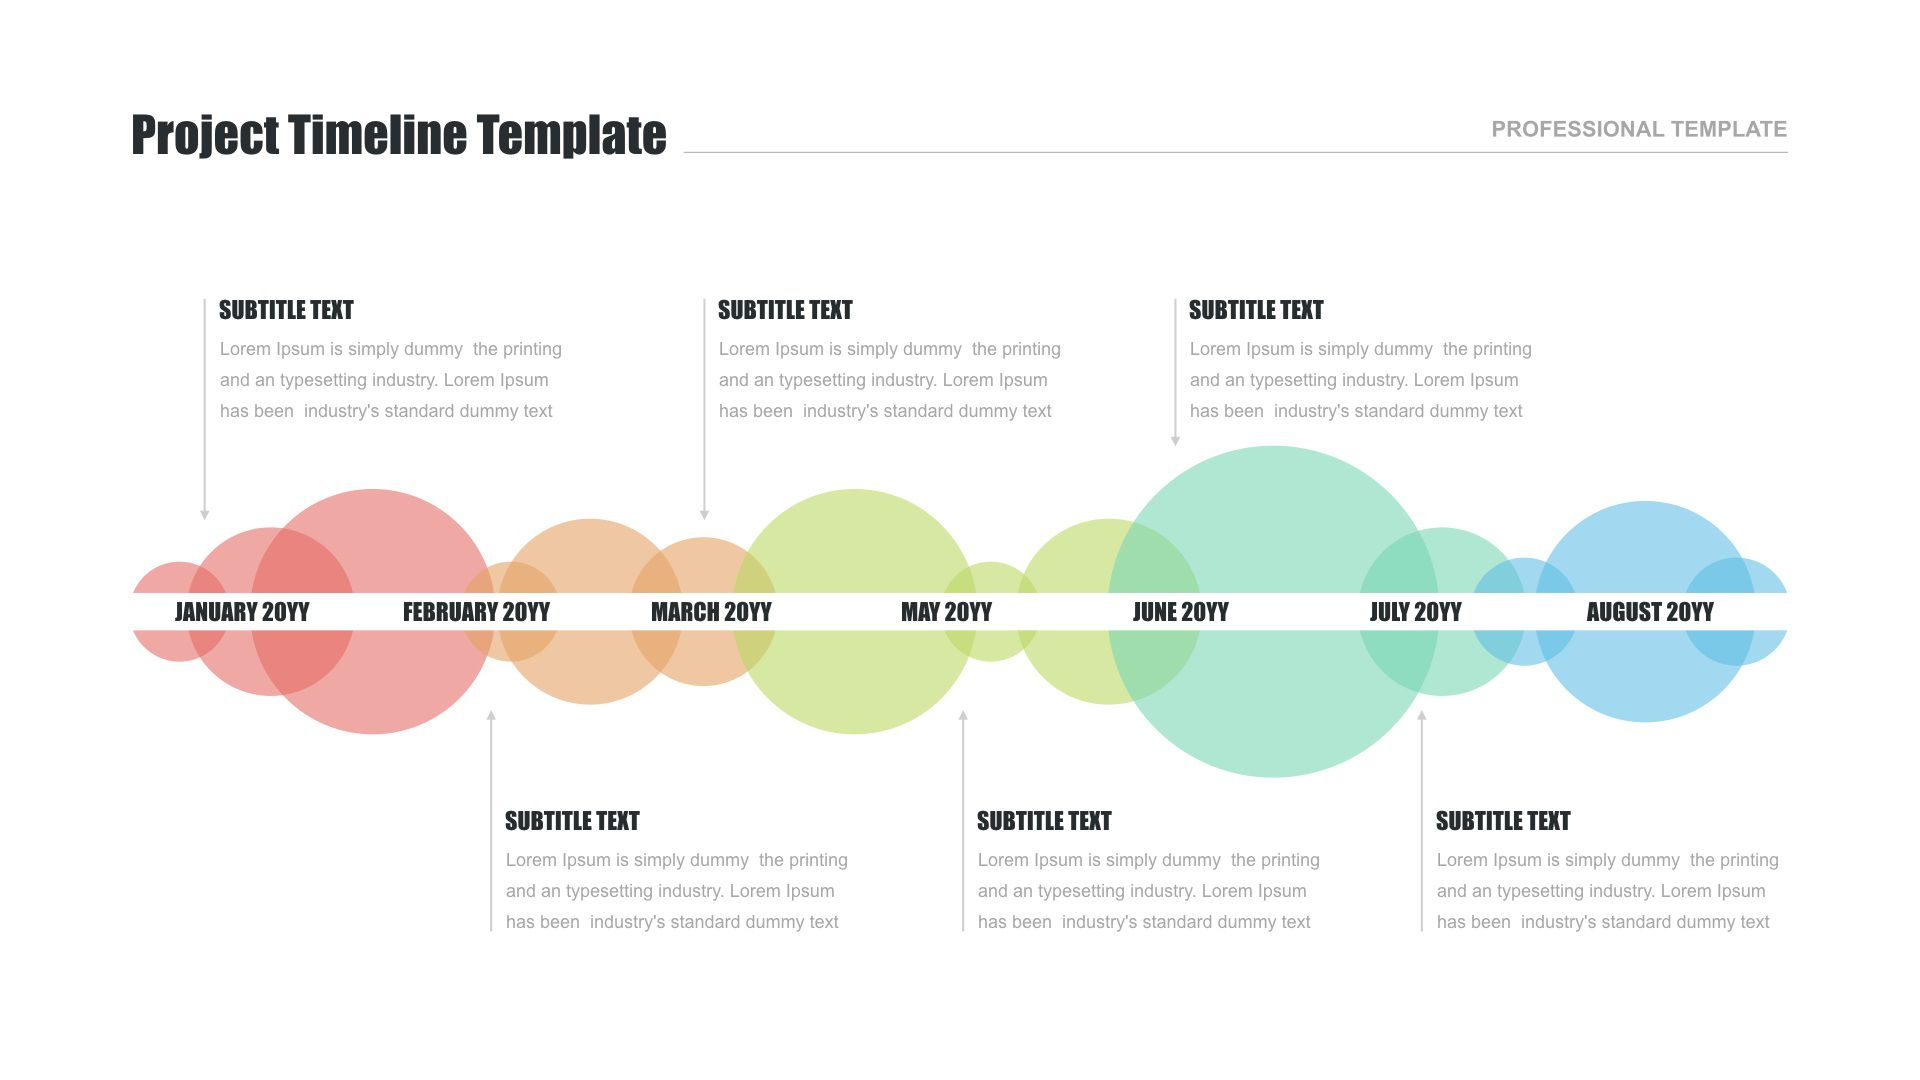 000 Surprising Project Timeline Template Powerpoint High Def  M Ppt Free DownloadFull